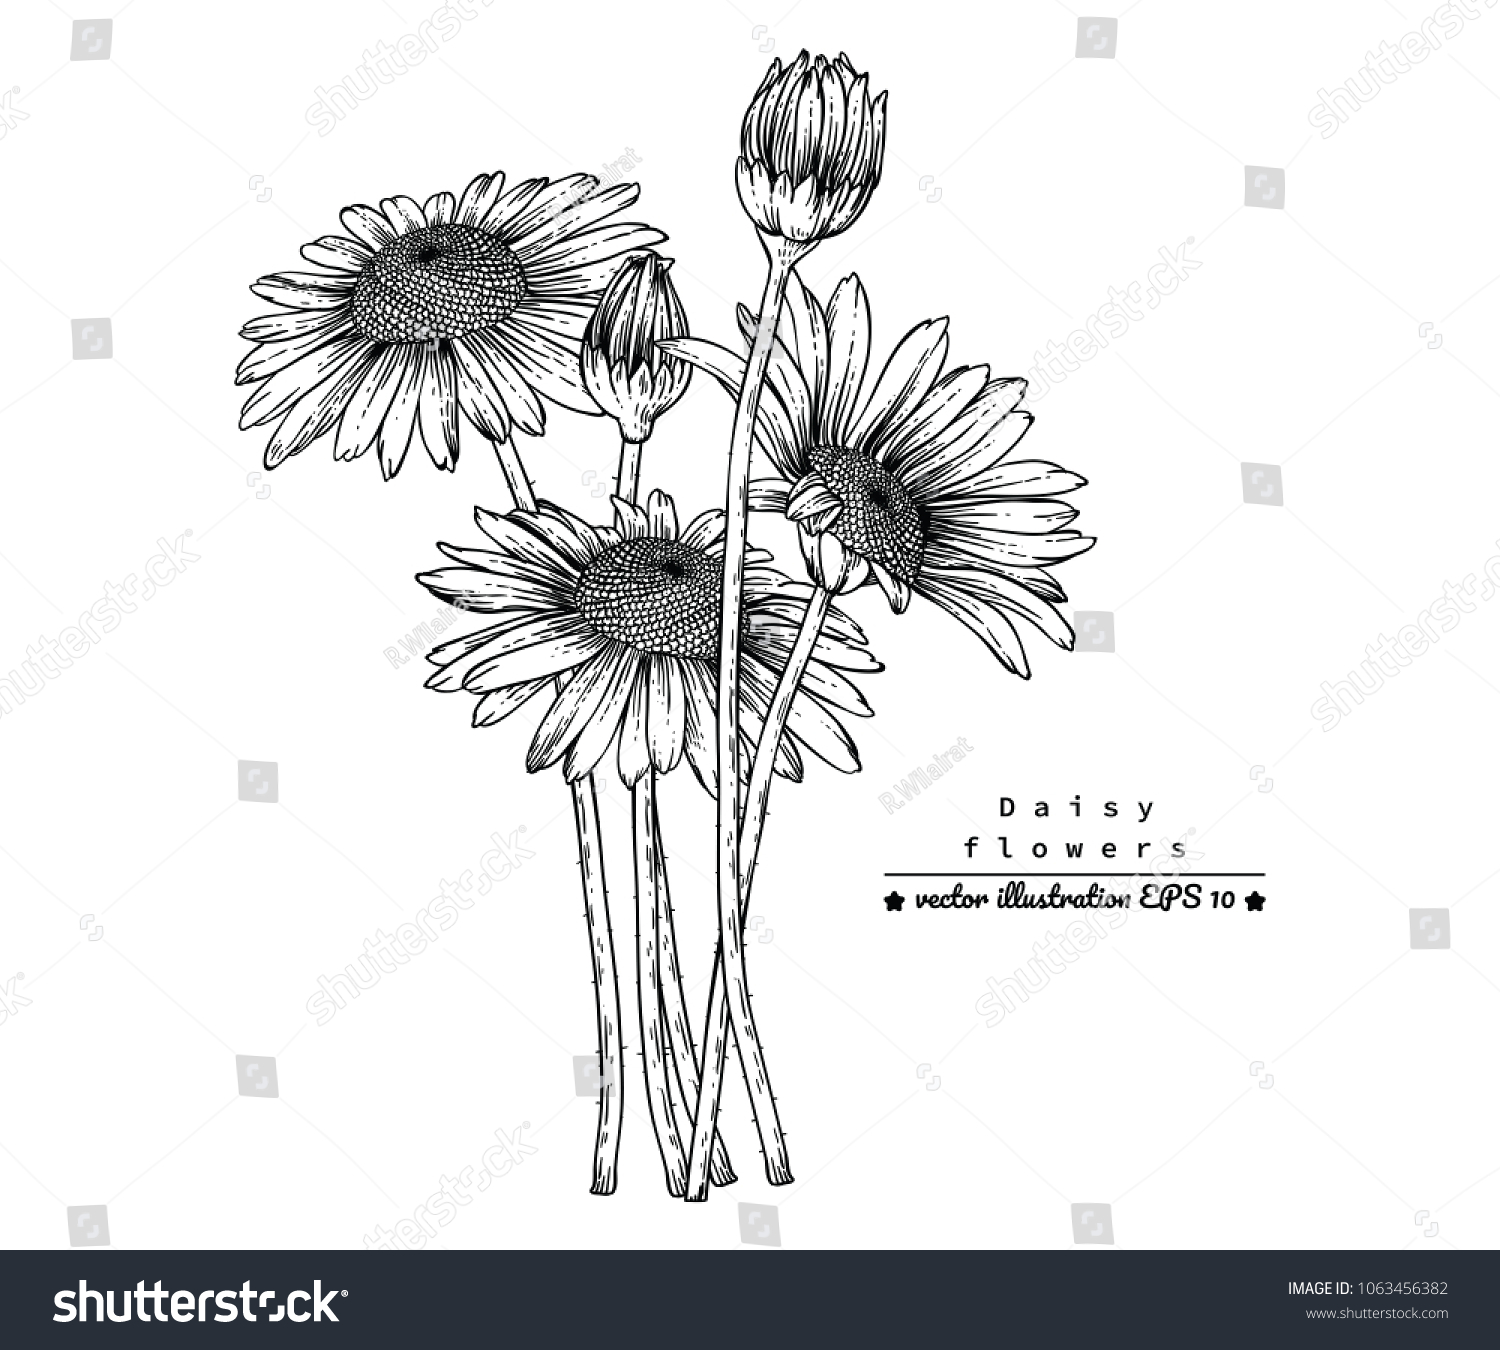 Flower drawings daisy flowers by hand stock vector royalty free flower drawings daisy flowers by hand drawn with line art on white backgrounds izmirmasajfo